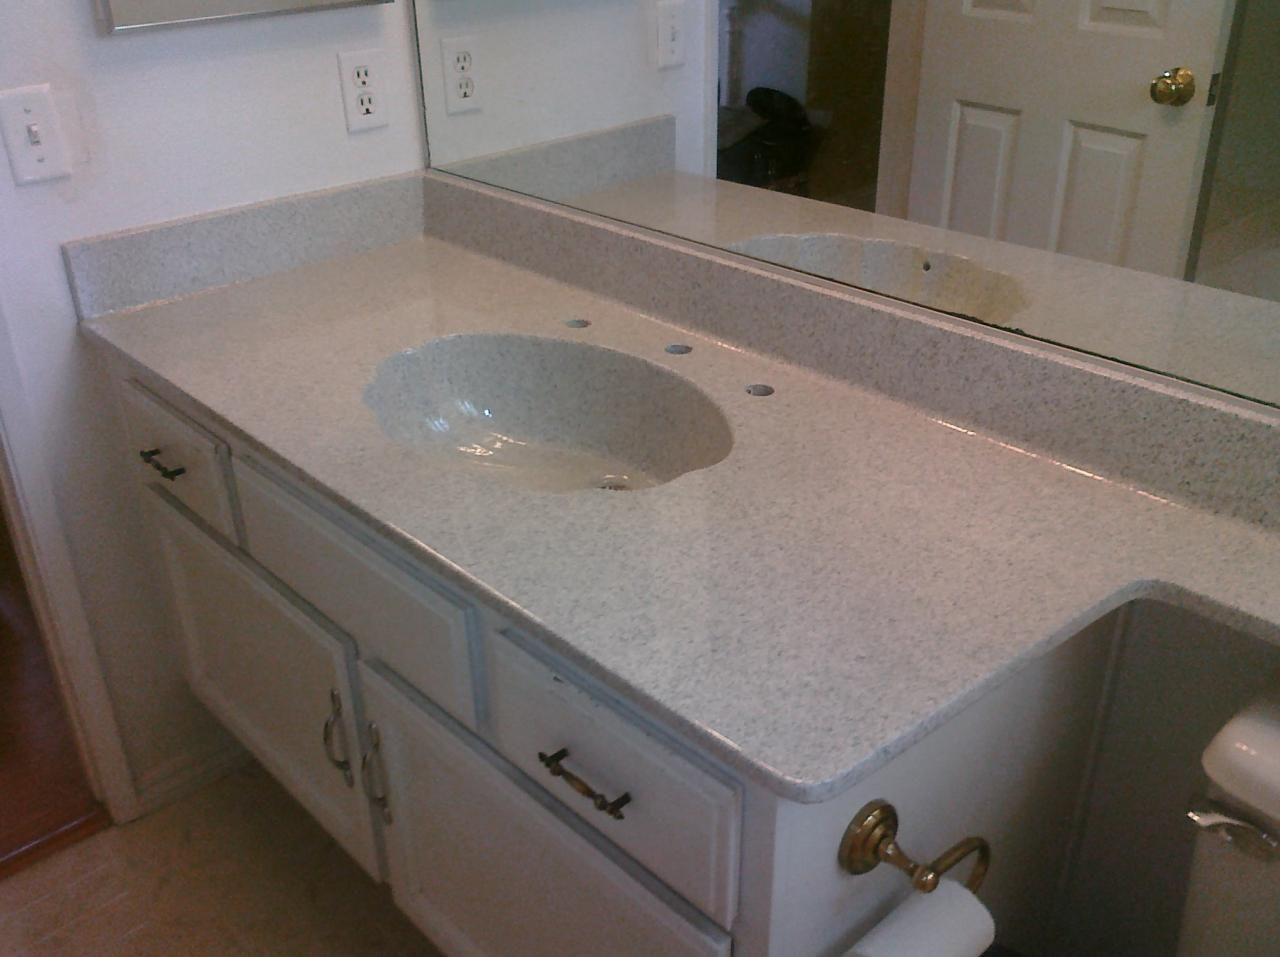 Pkb Reglazing Cultured Marble Countertop Sink Combo Reglazed Travertine Speckled